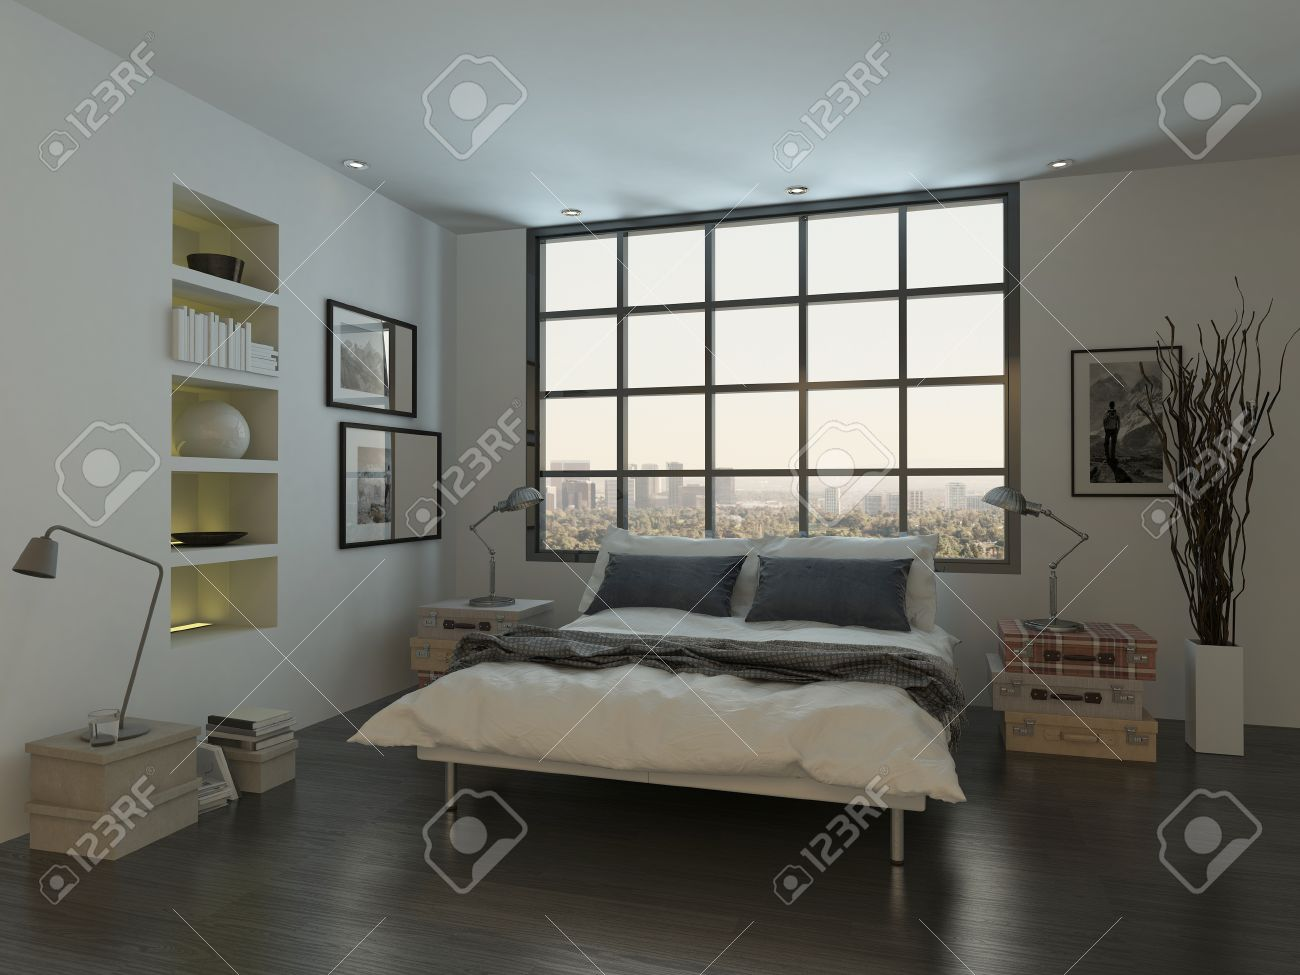 Modern Bedroom Interior With Double Bed In Front Of Huge Window Stock Photo Picture And Royalty Free Image Image 28772383